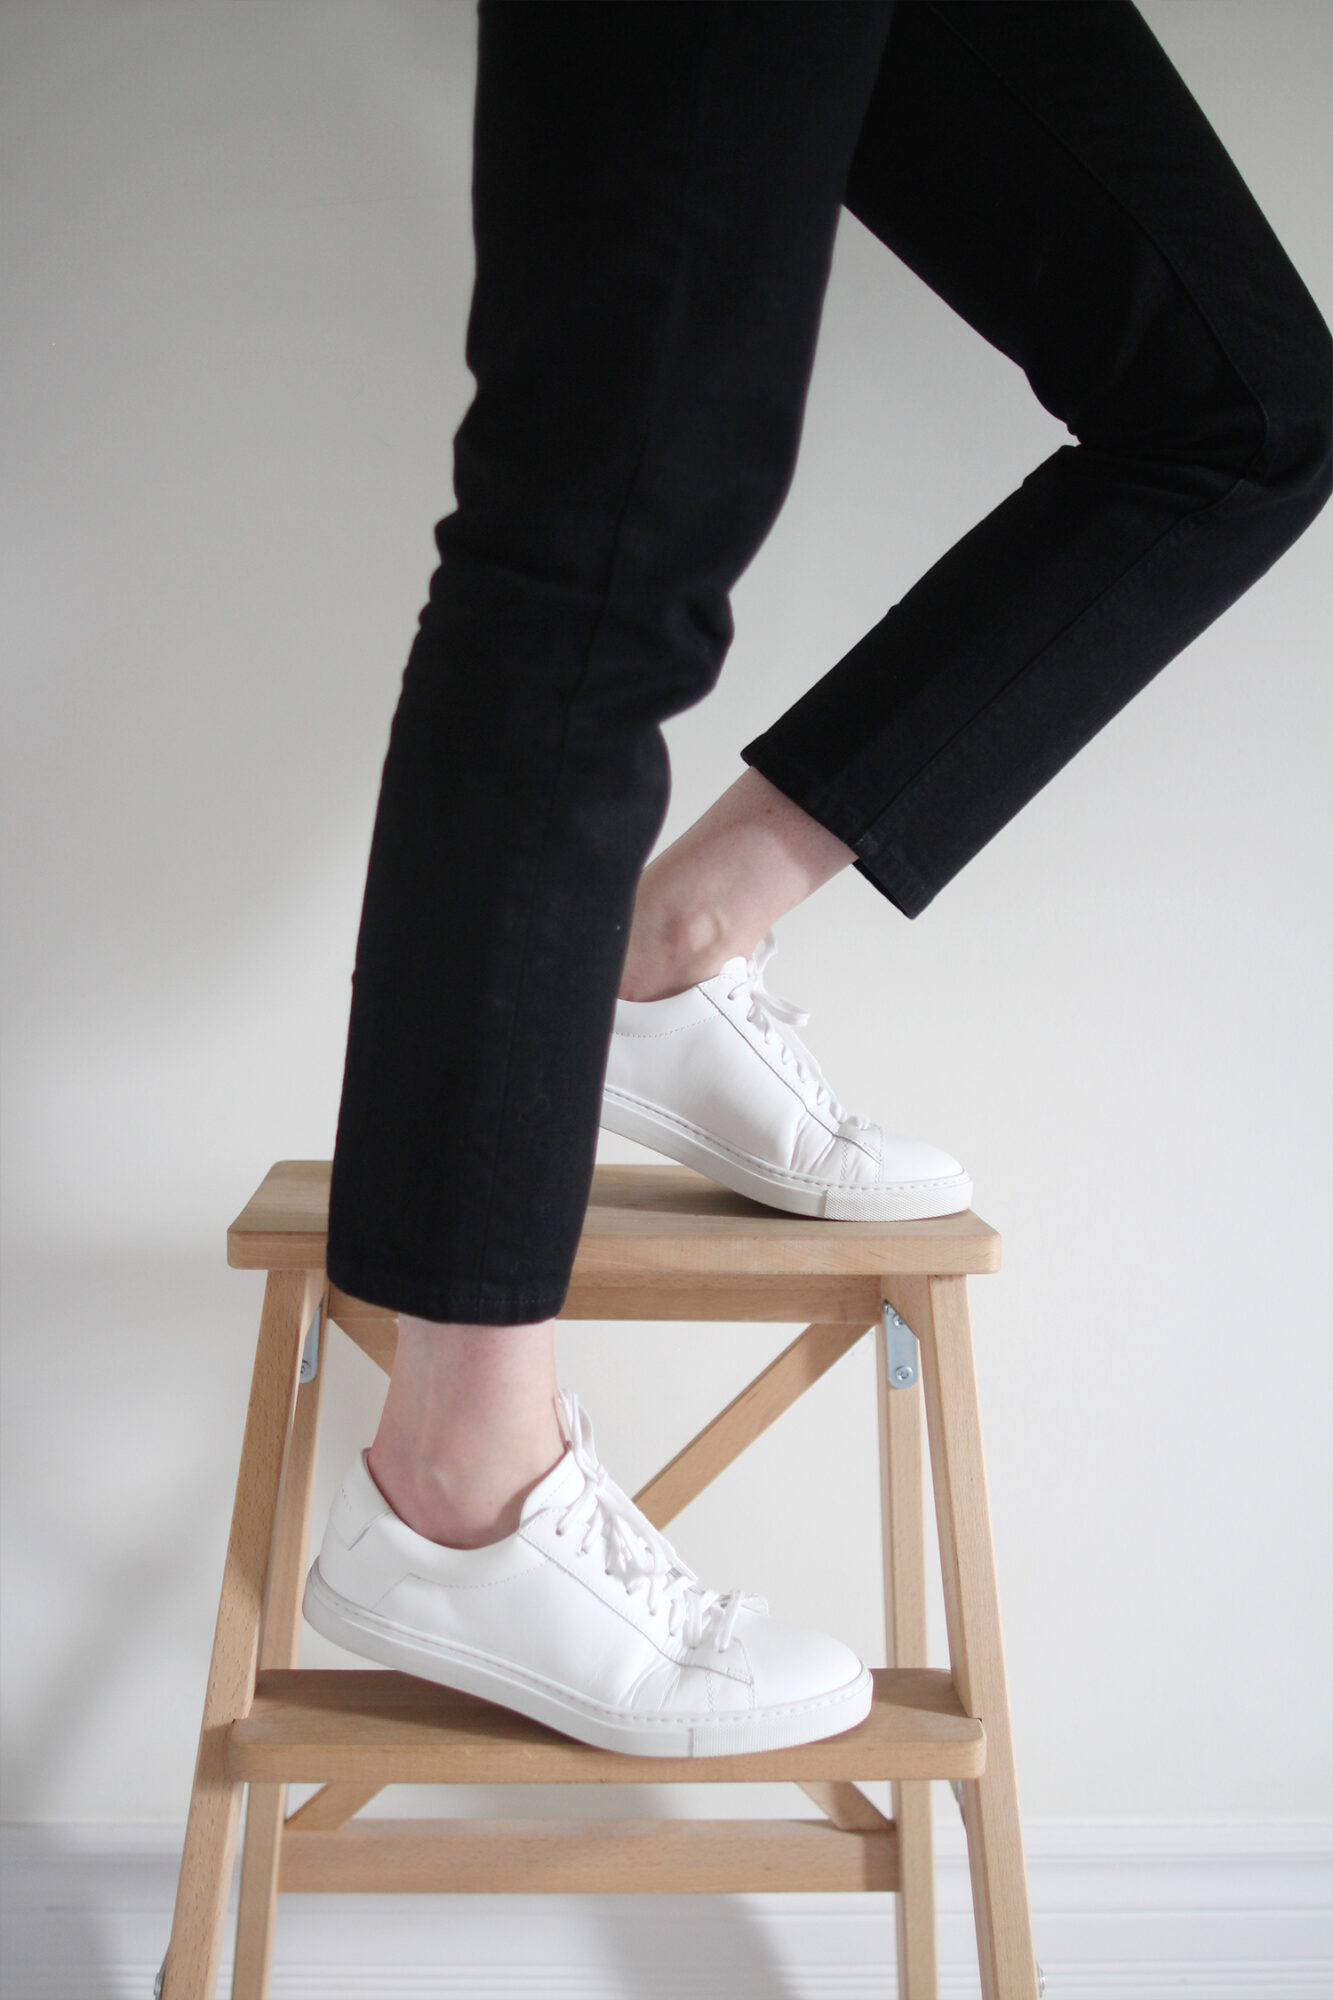 Style Bee - Oliver Cabell - Low 1 White Sneaker Review